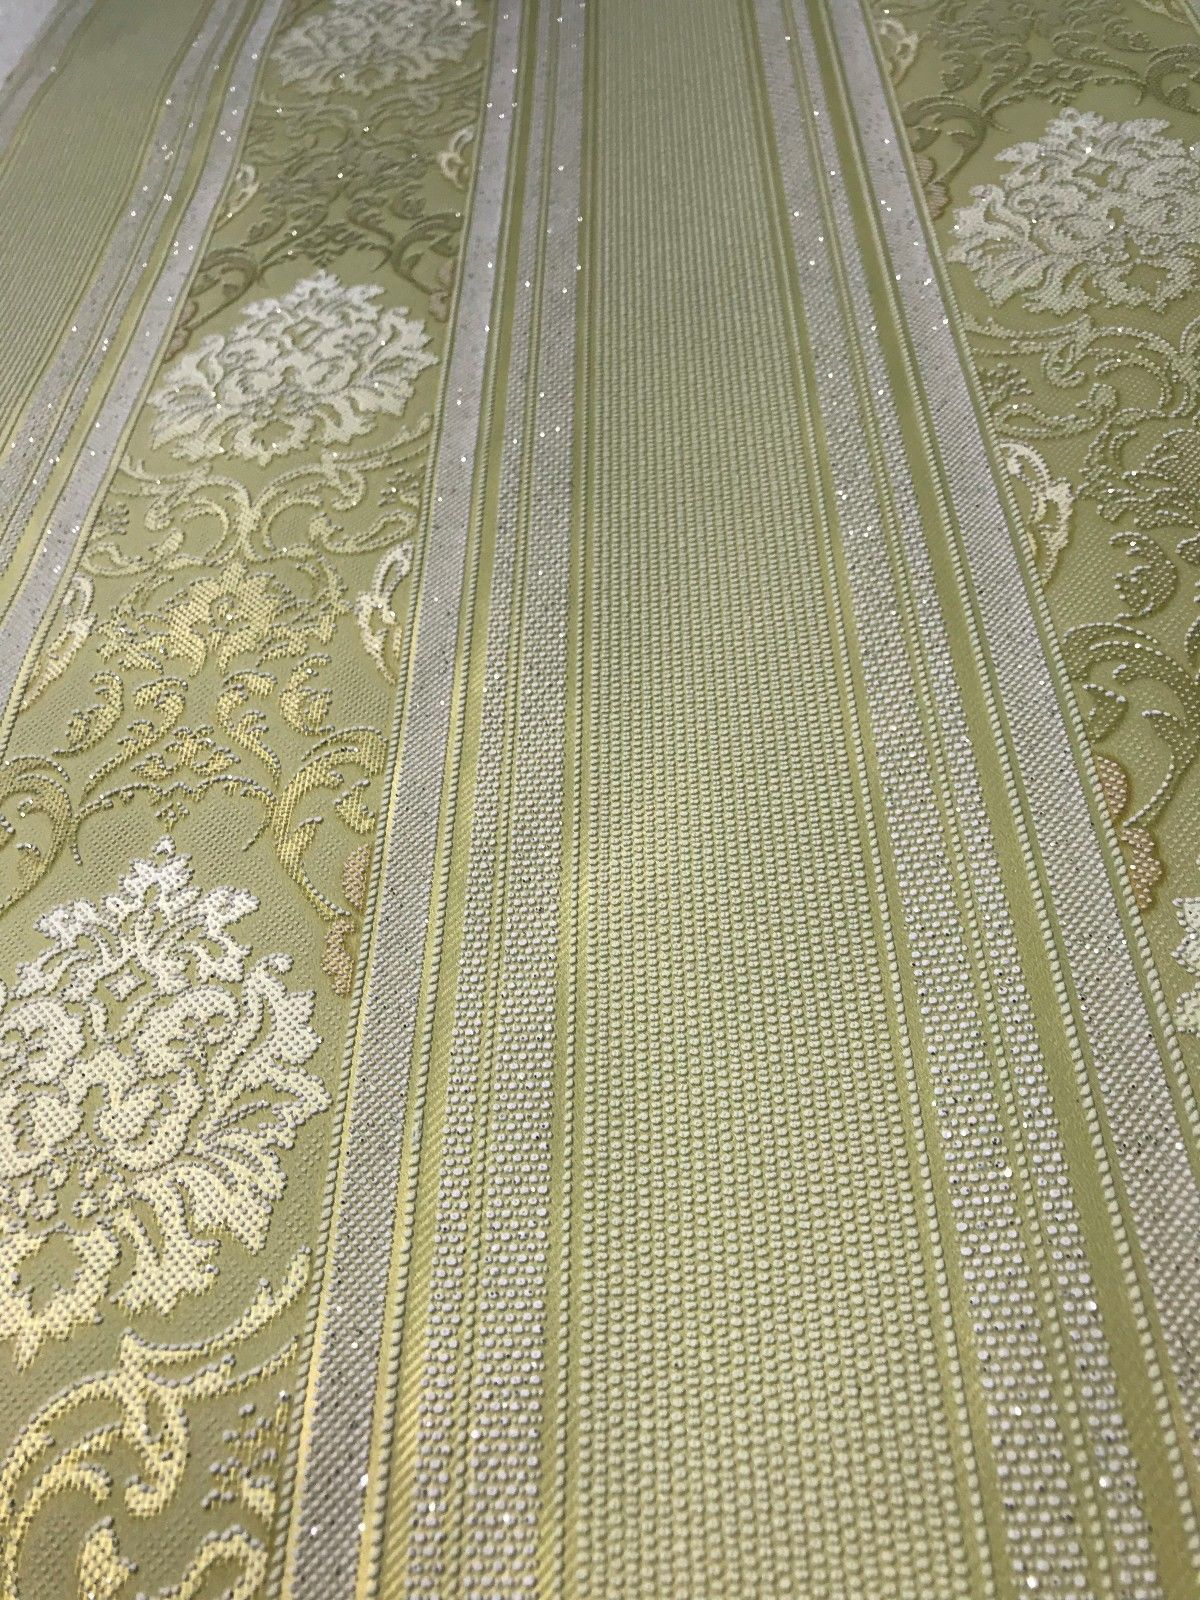 Damask Stripes Wallpaper Roll Olive Green Gold Metallic Victorian Embossed